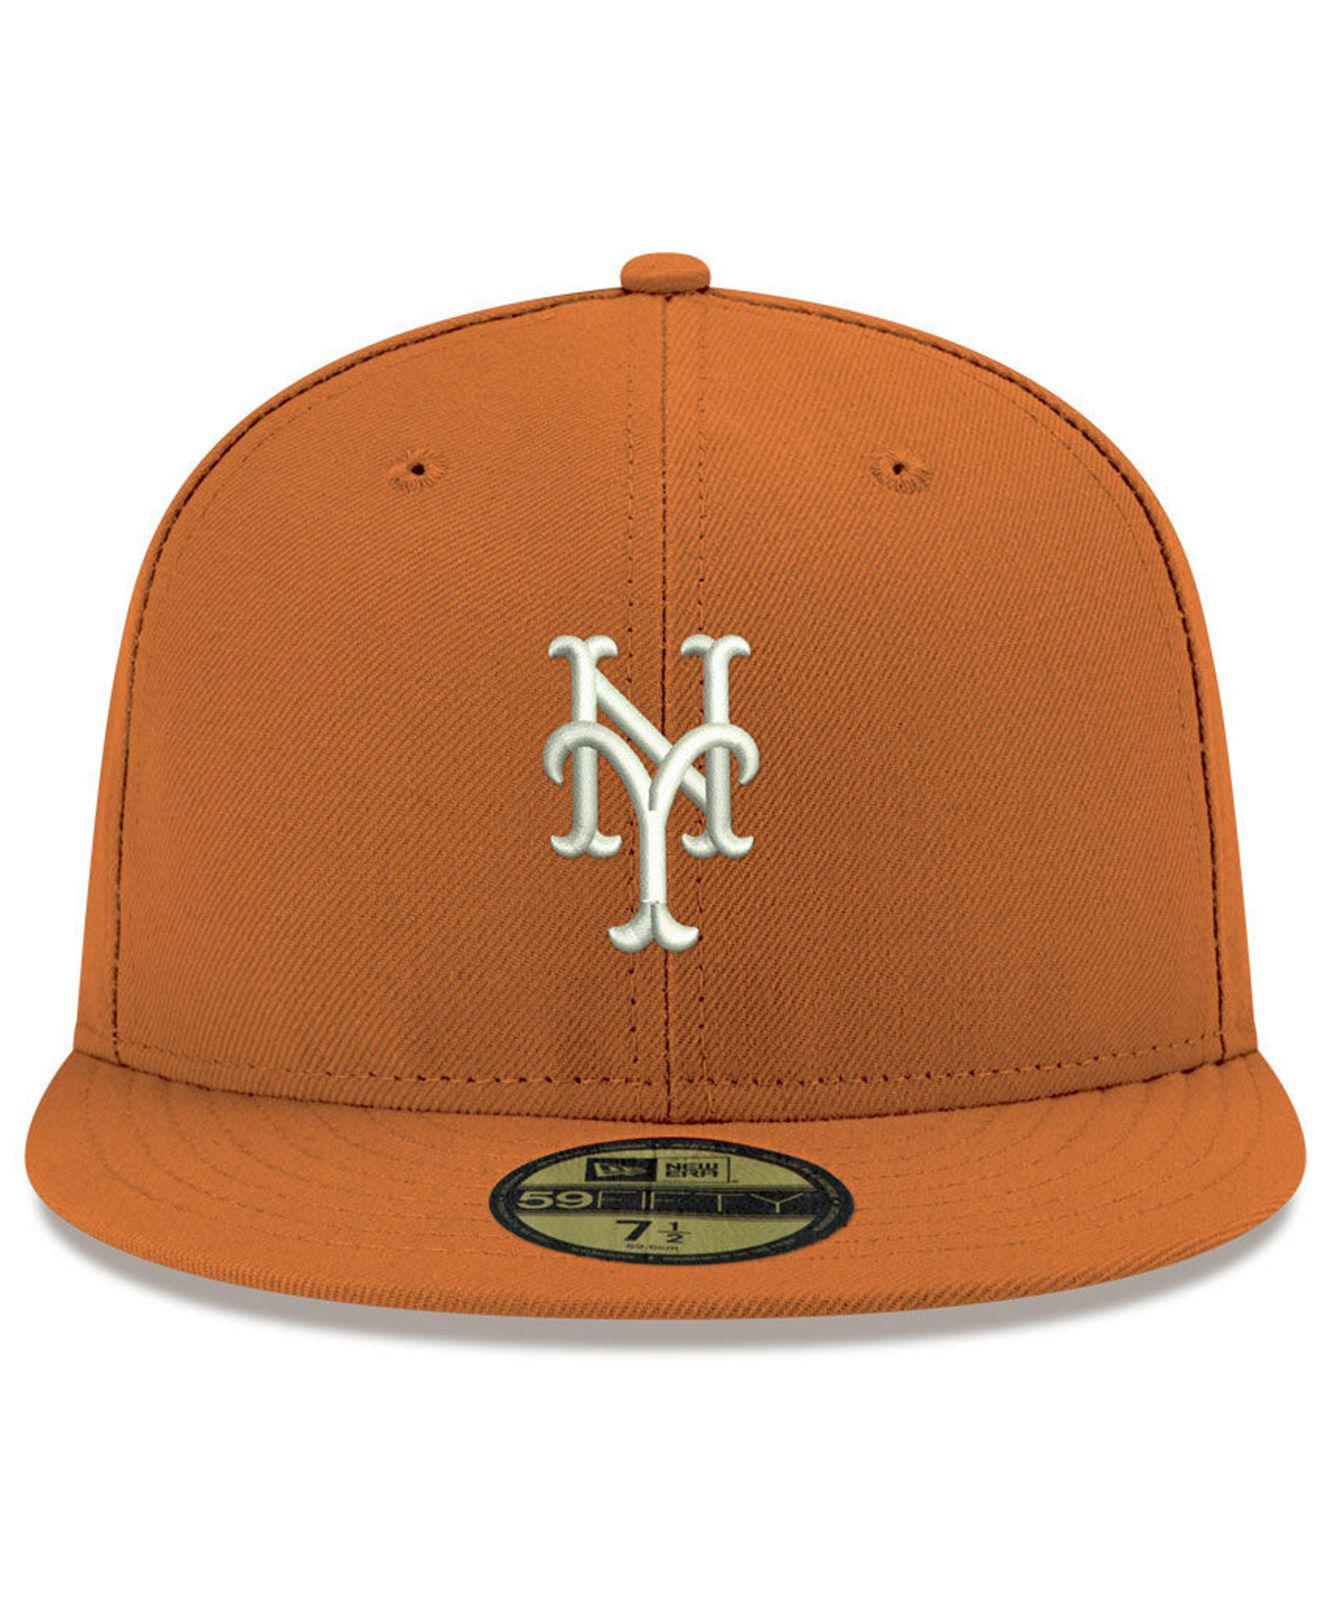 separation shoes 5aee0 49d3e ... new arrivals lyst ktz new york mets re dub 59fifty fitted cap in orange  for men